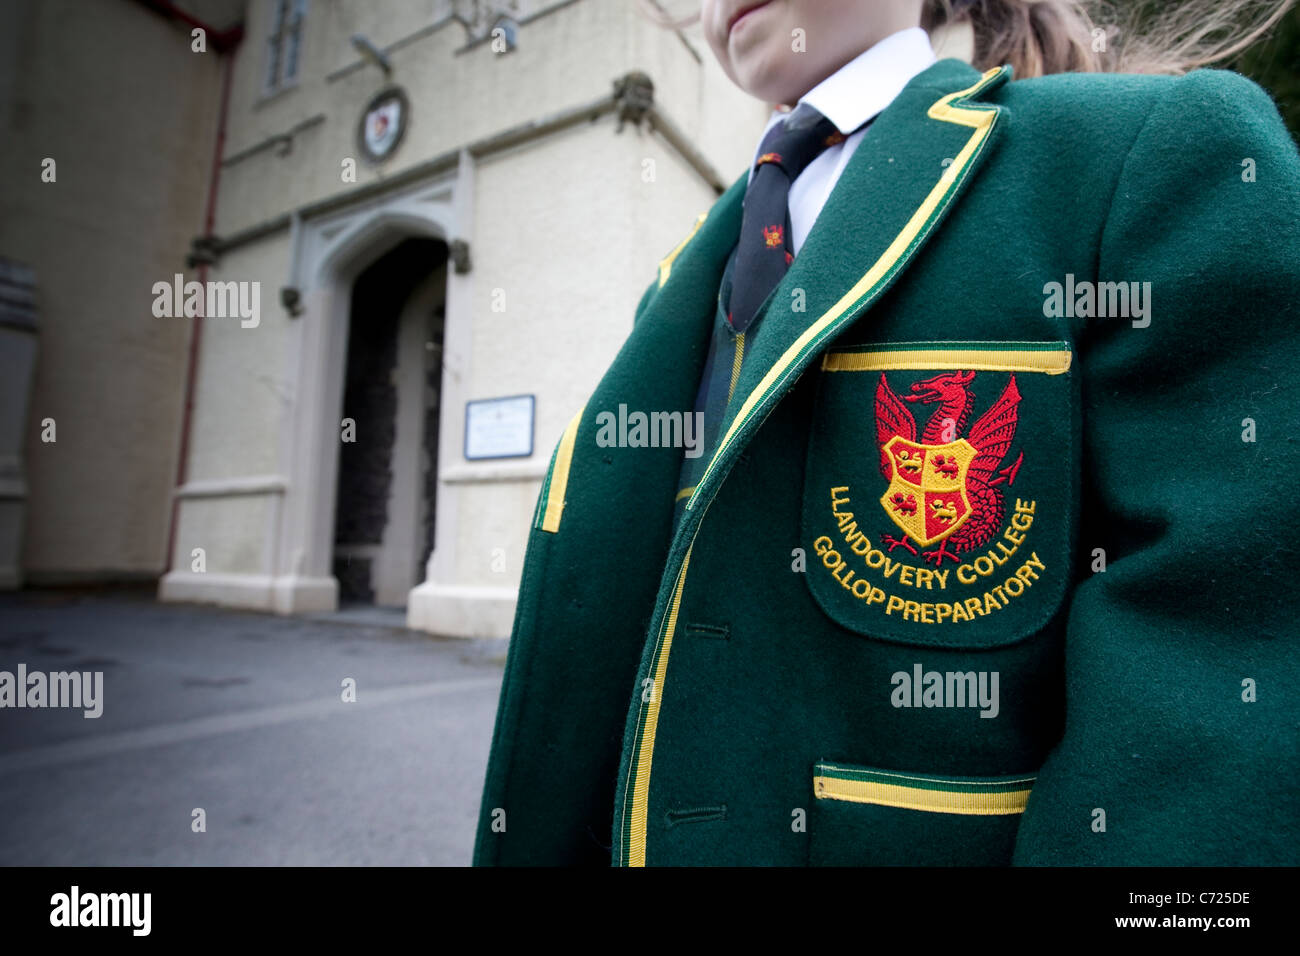 A young pupil in the traditional uniform of Llandovery College and Preparatory School. - Stock Image